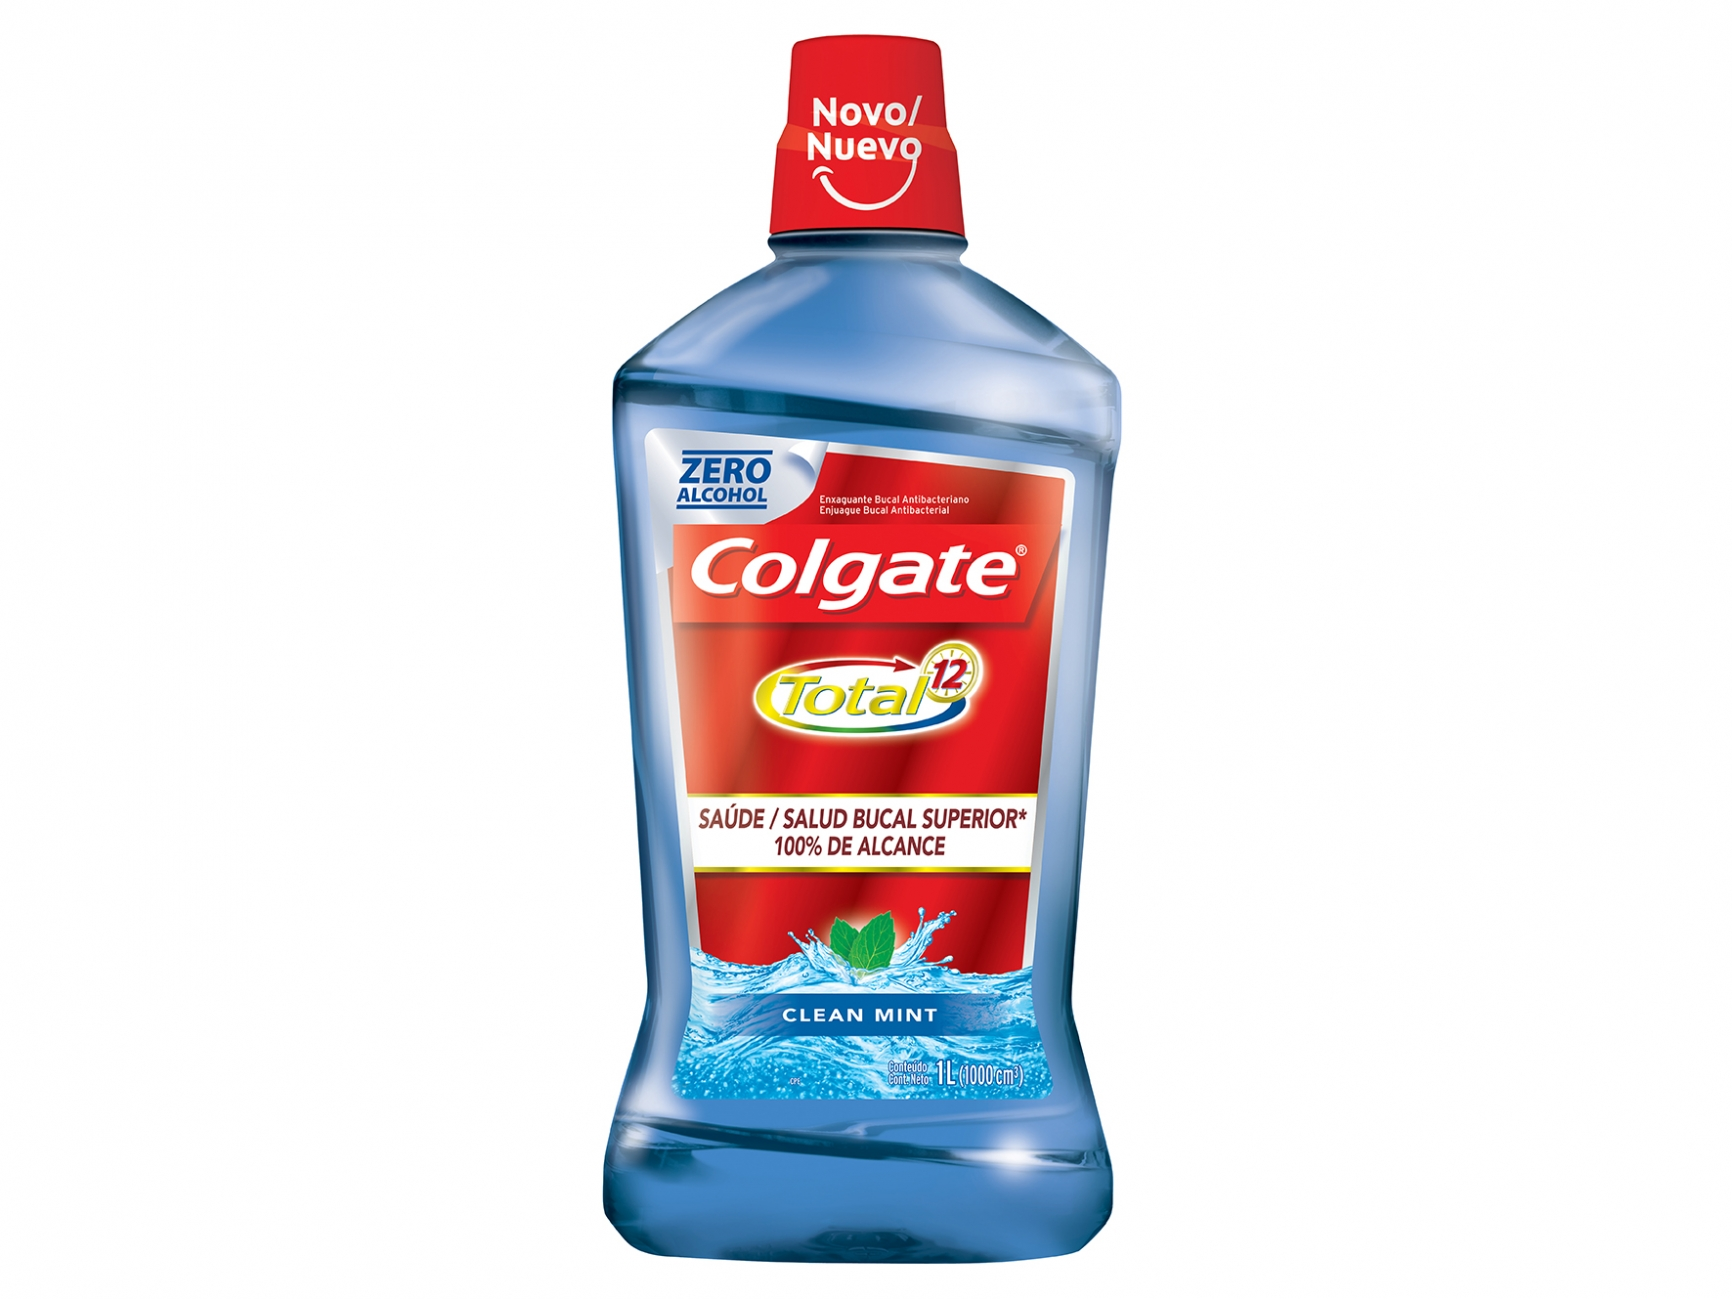 Antisséptico Colgate Total 12 1LT Clean Mint